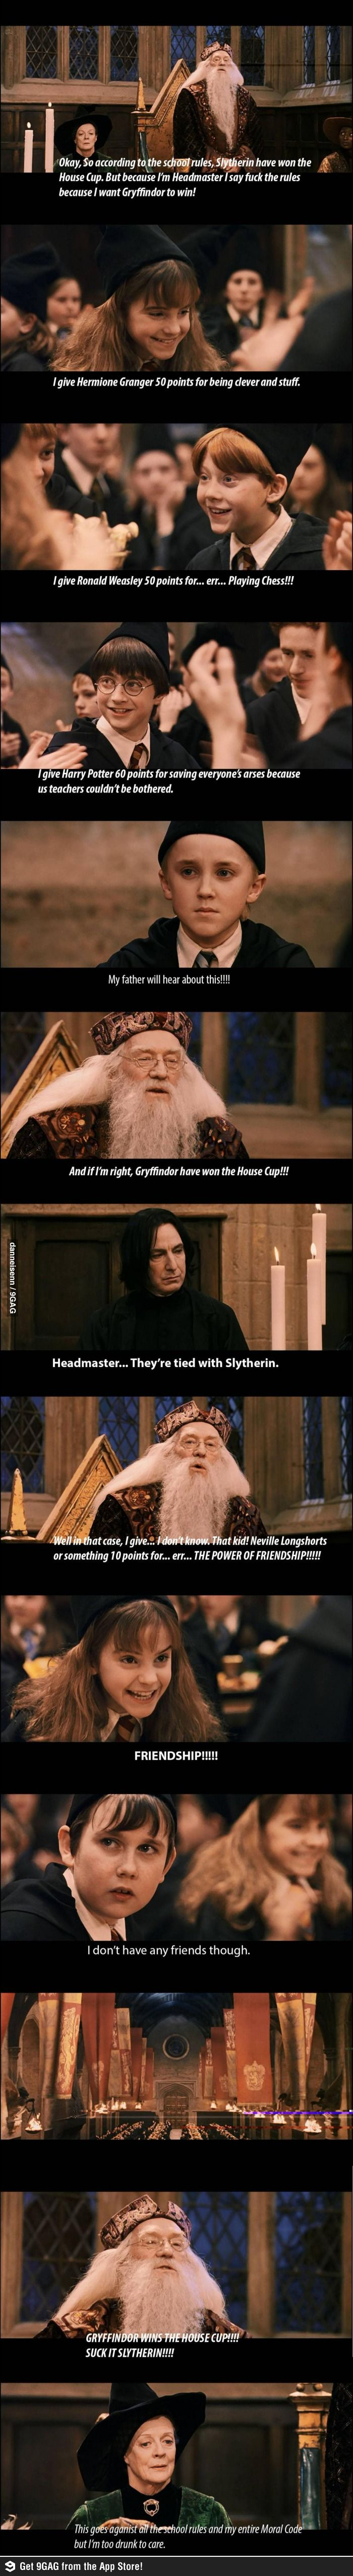 Dumbledore: Screwing Slytherin since 1997 bahaha